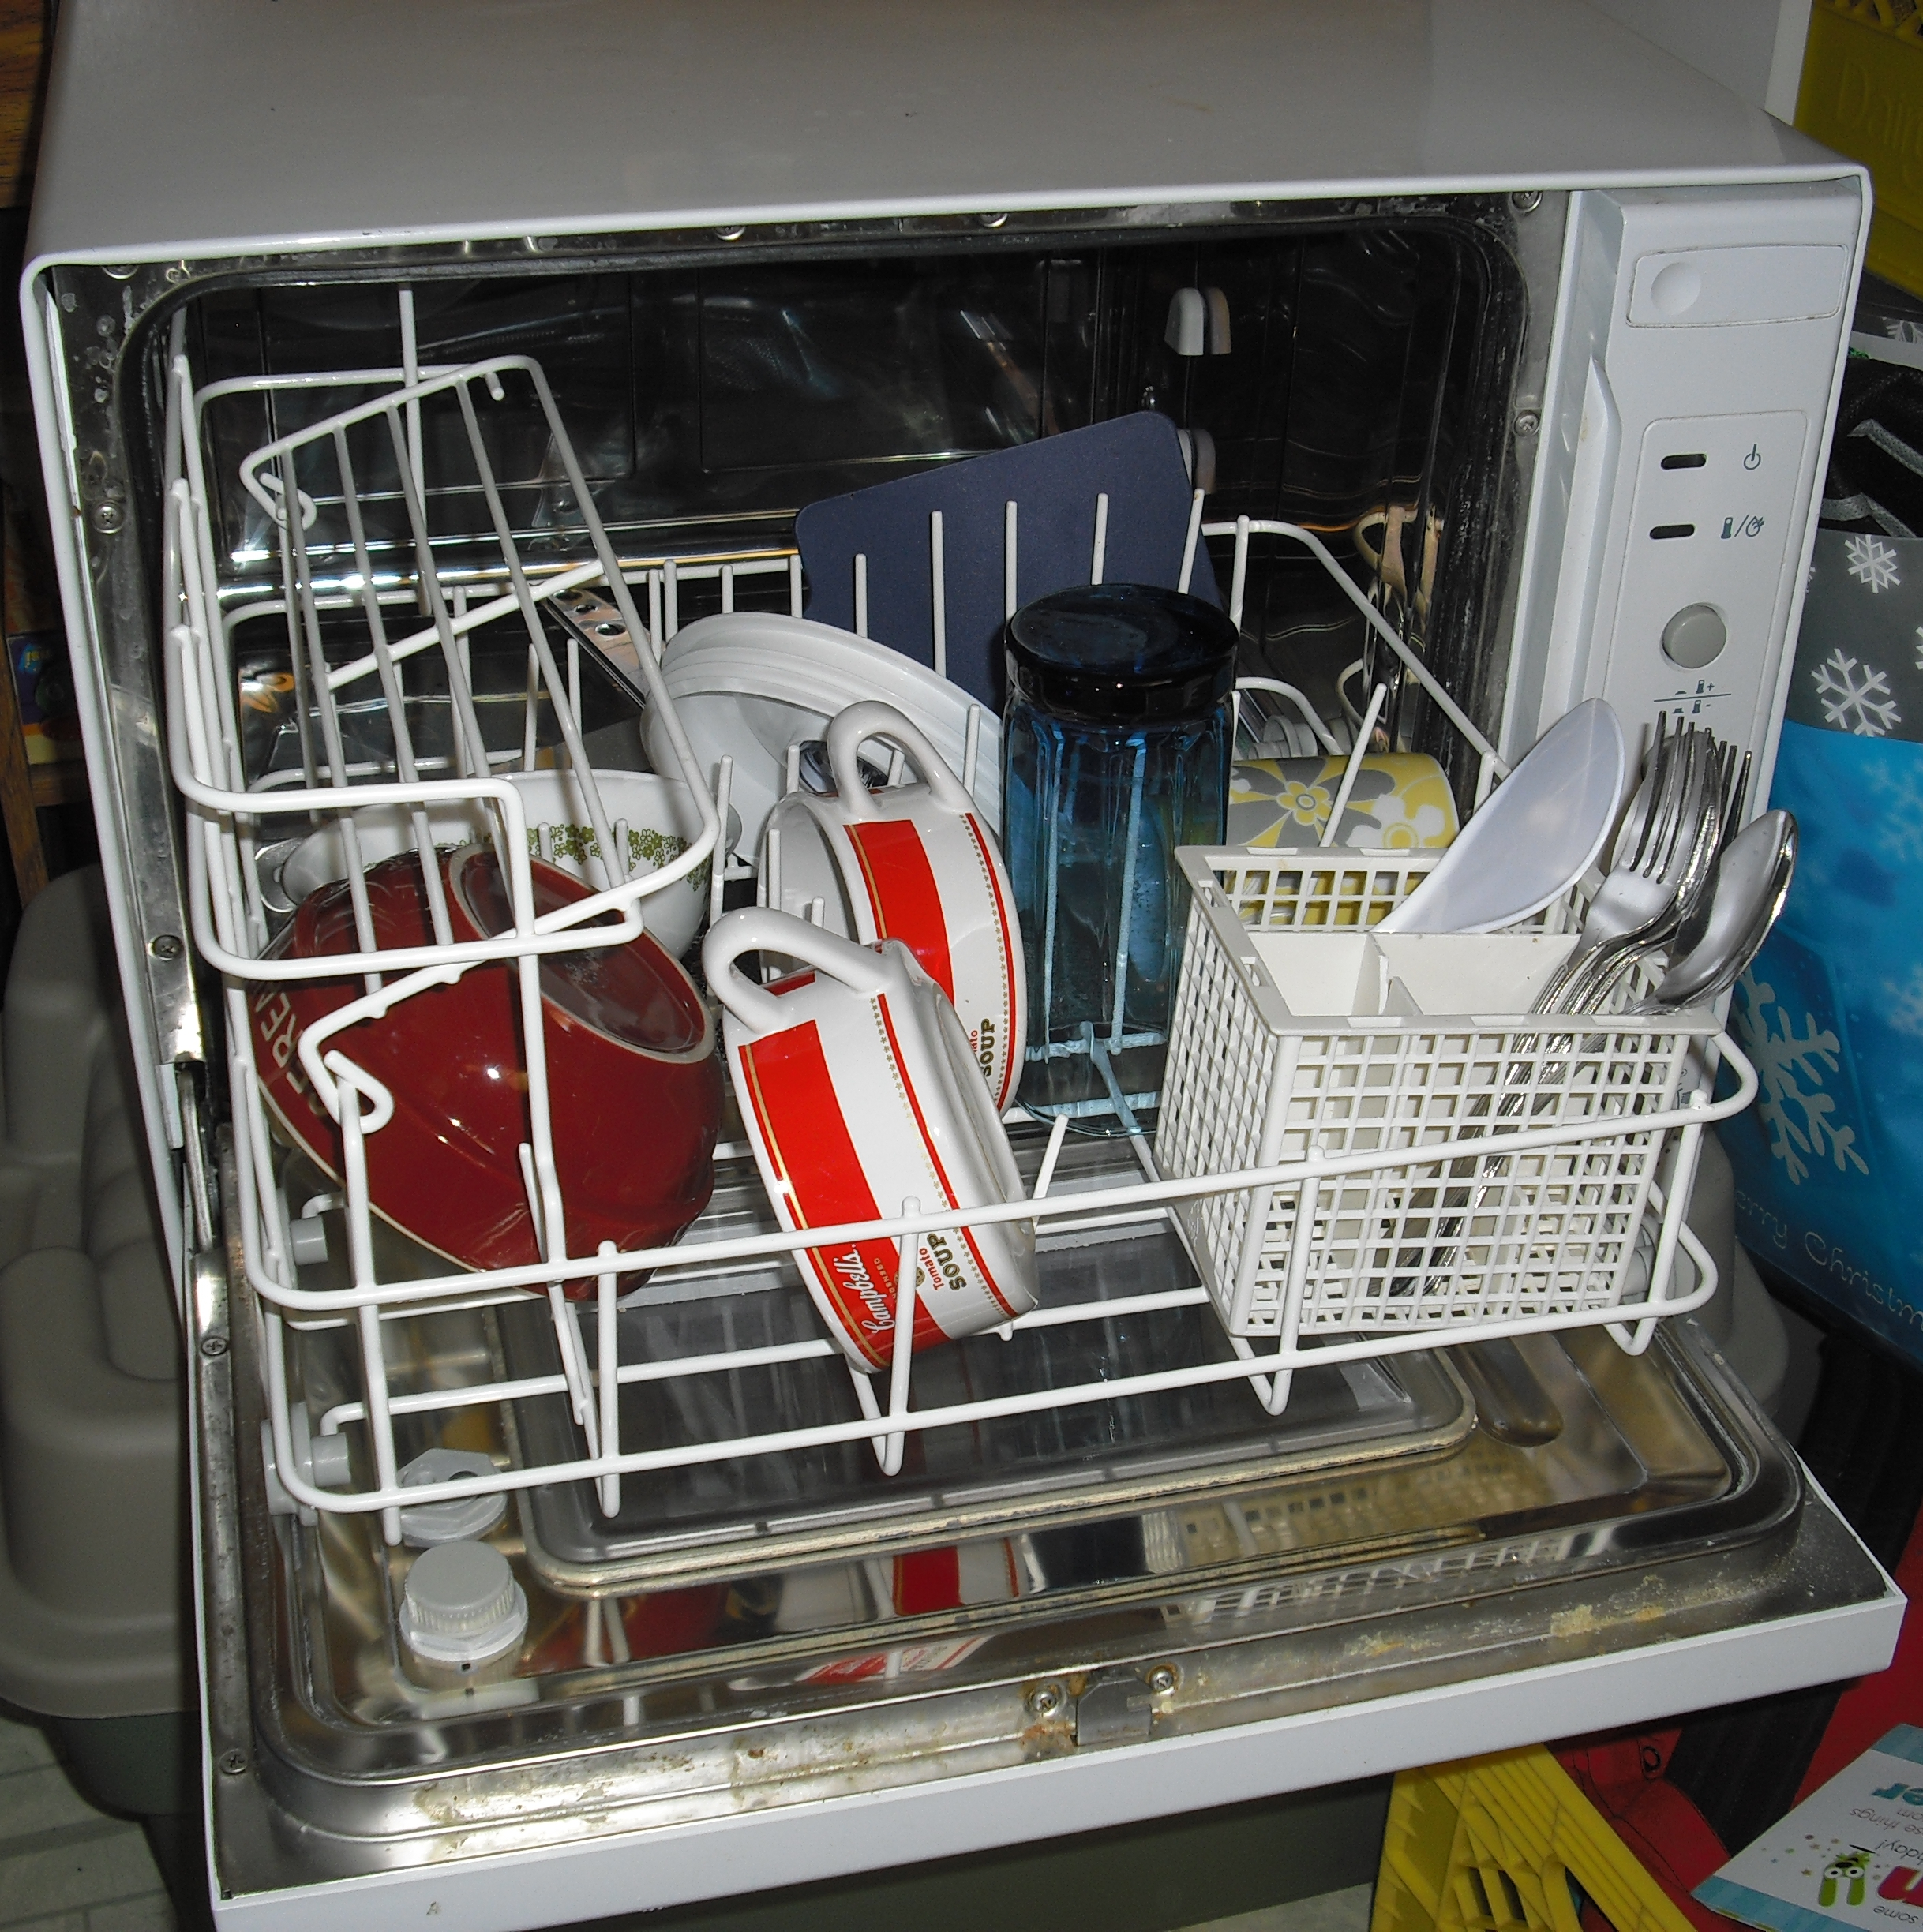 Commercial Countertop Dishwasher Dishwasher